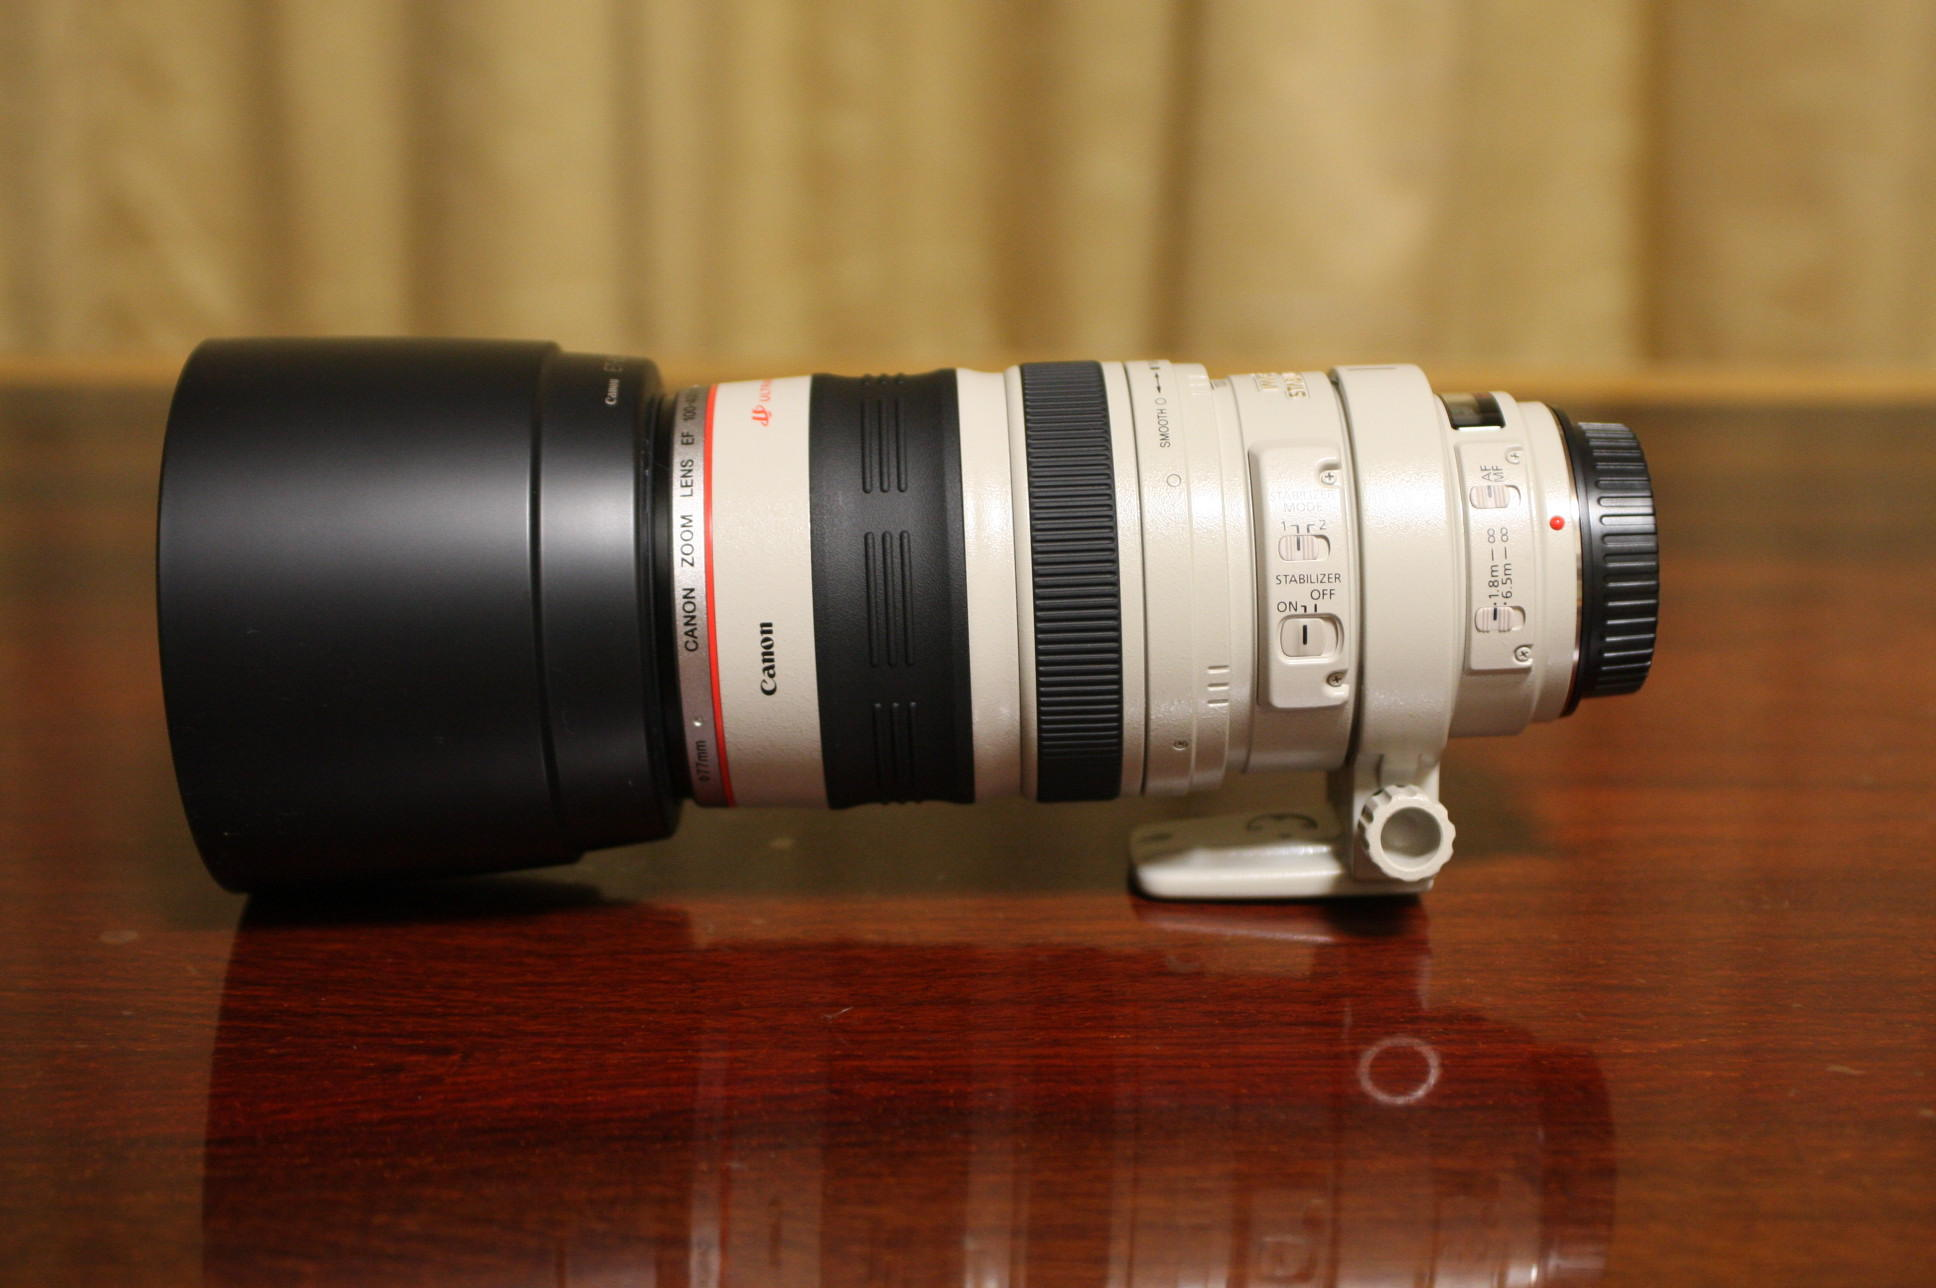 EF100-400mmf4.5-5.6L IS USM